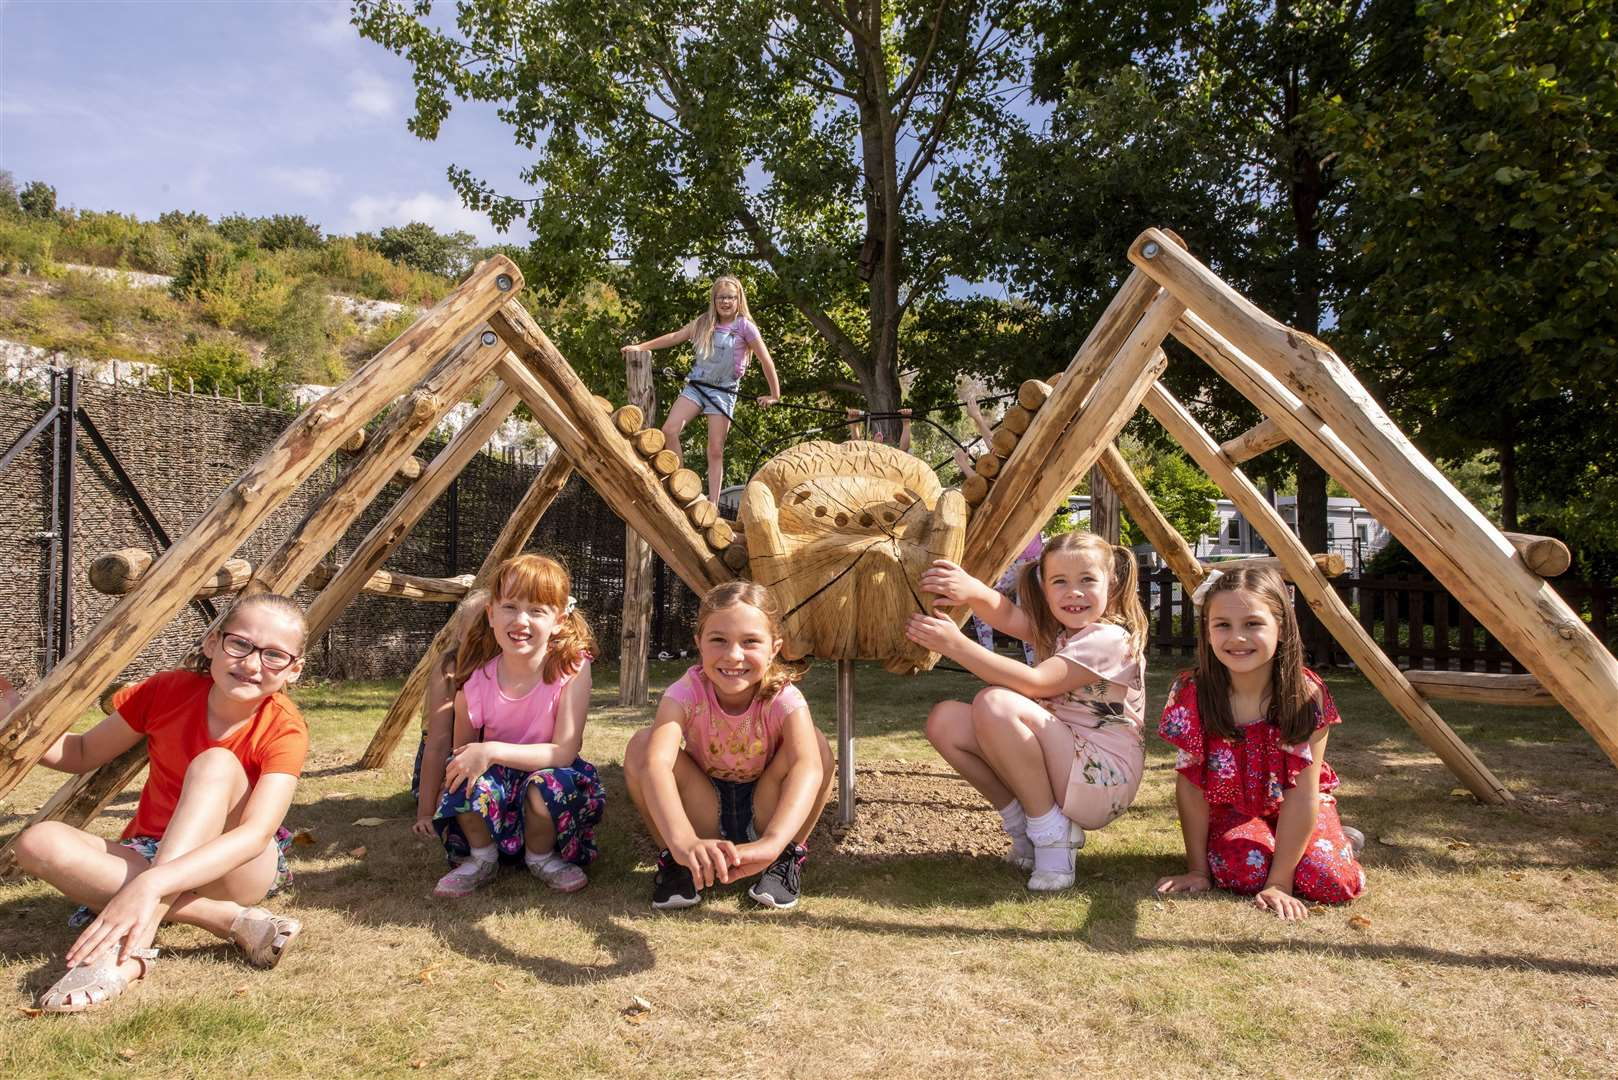 A new climbing frame also opened at Bluewater this summer